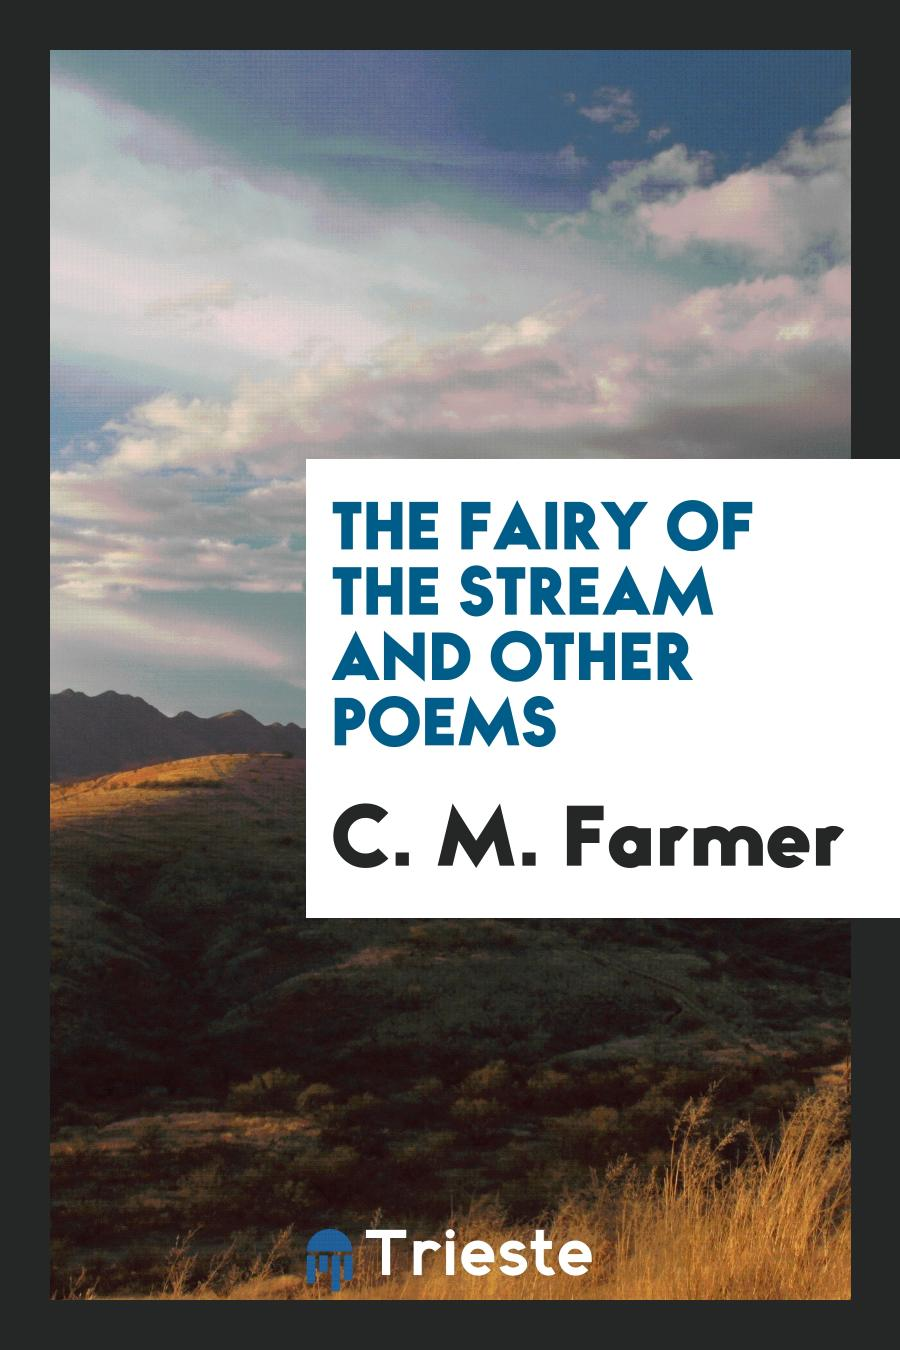 The Fairy of the Stream and Other Poems